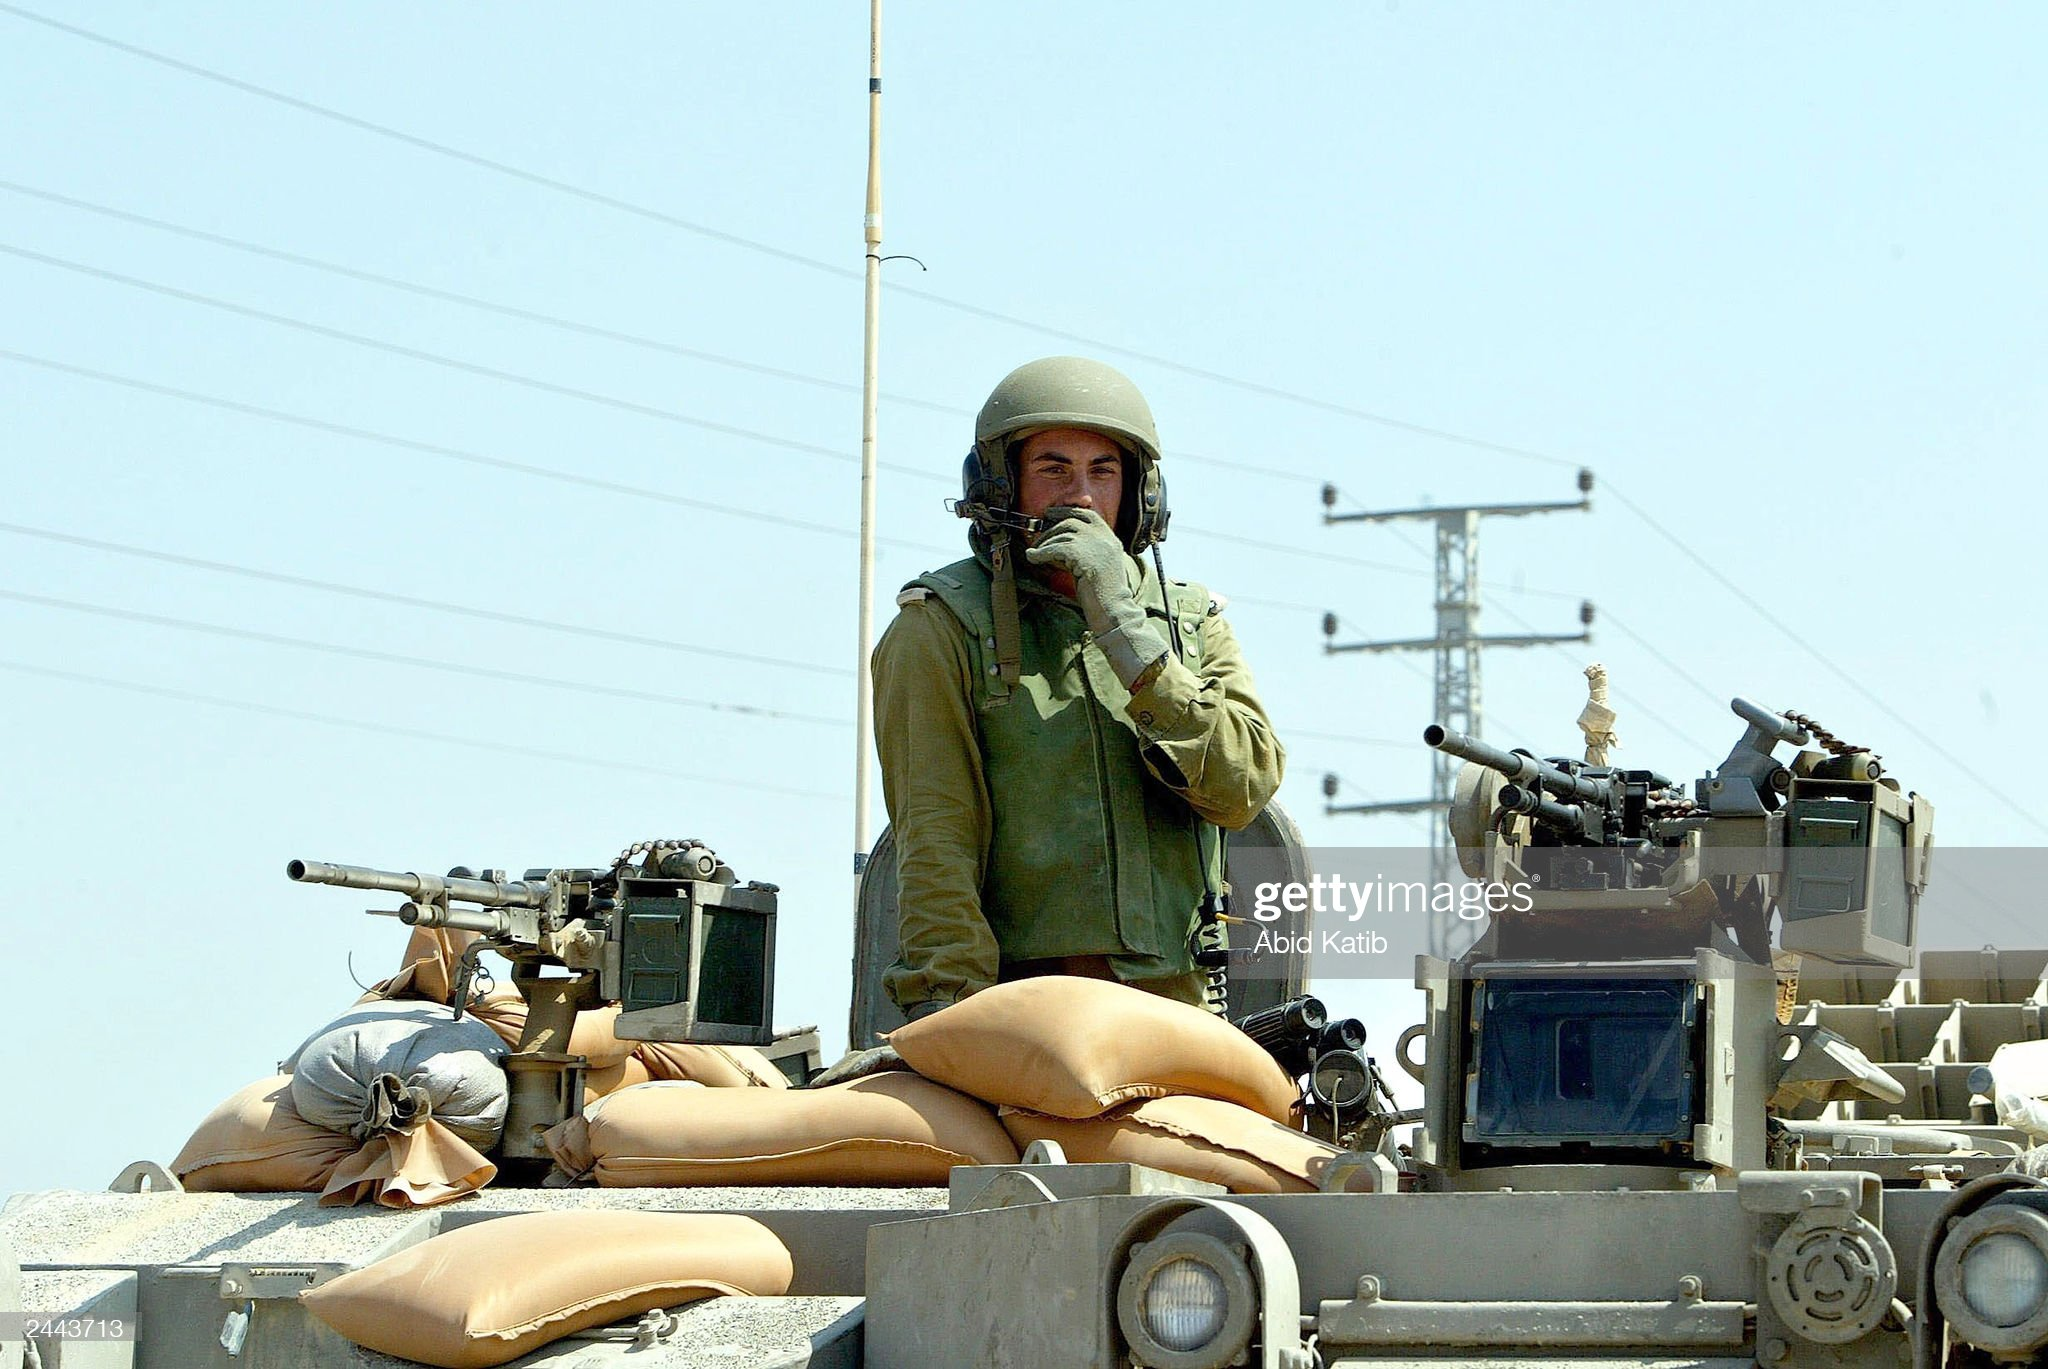 https://media.gettyimages.com/photos/an-israeli-soldier-speaks-into-his-radio-as-he-sits-on-his-tank-while-picture-id2443713?s=2048x2048